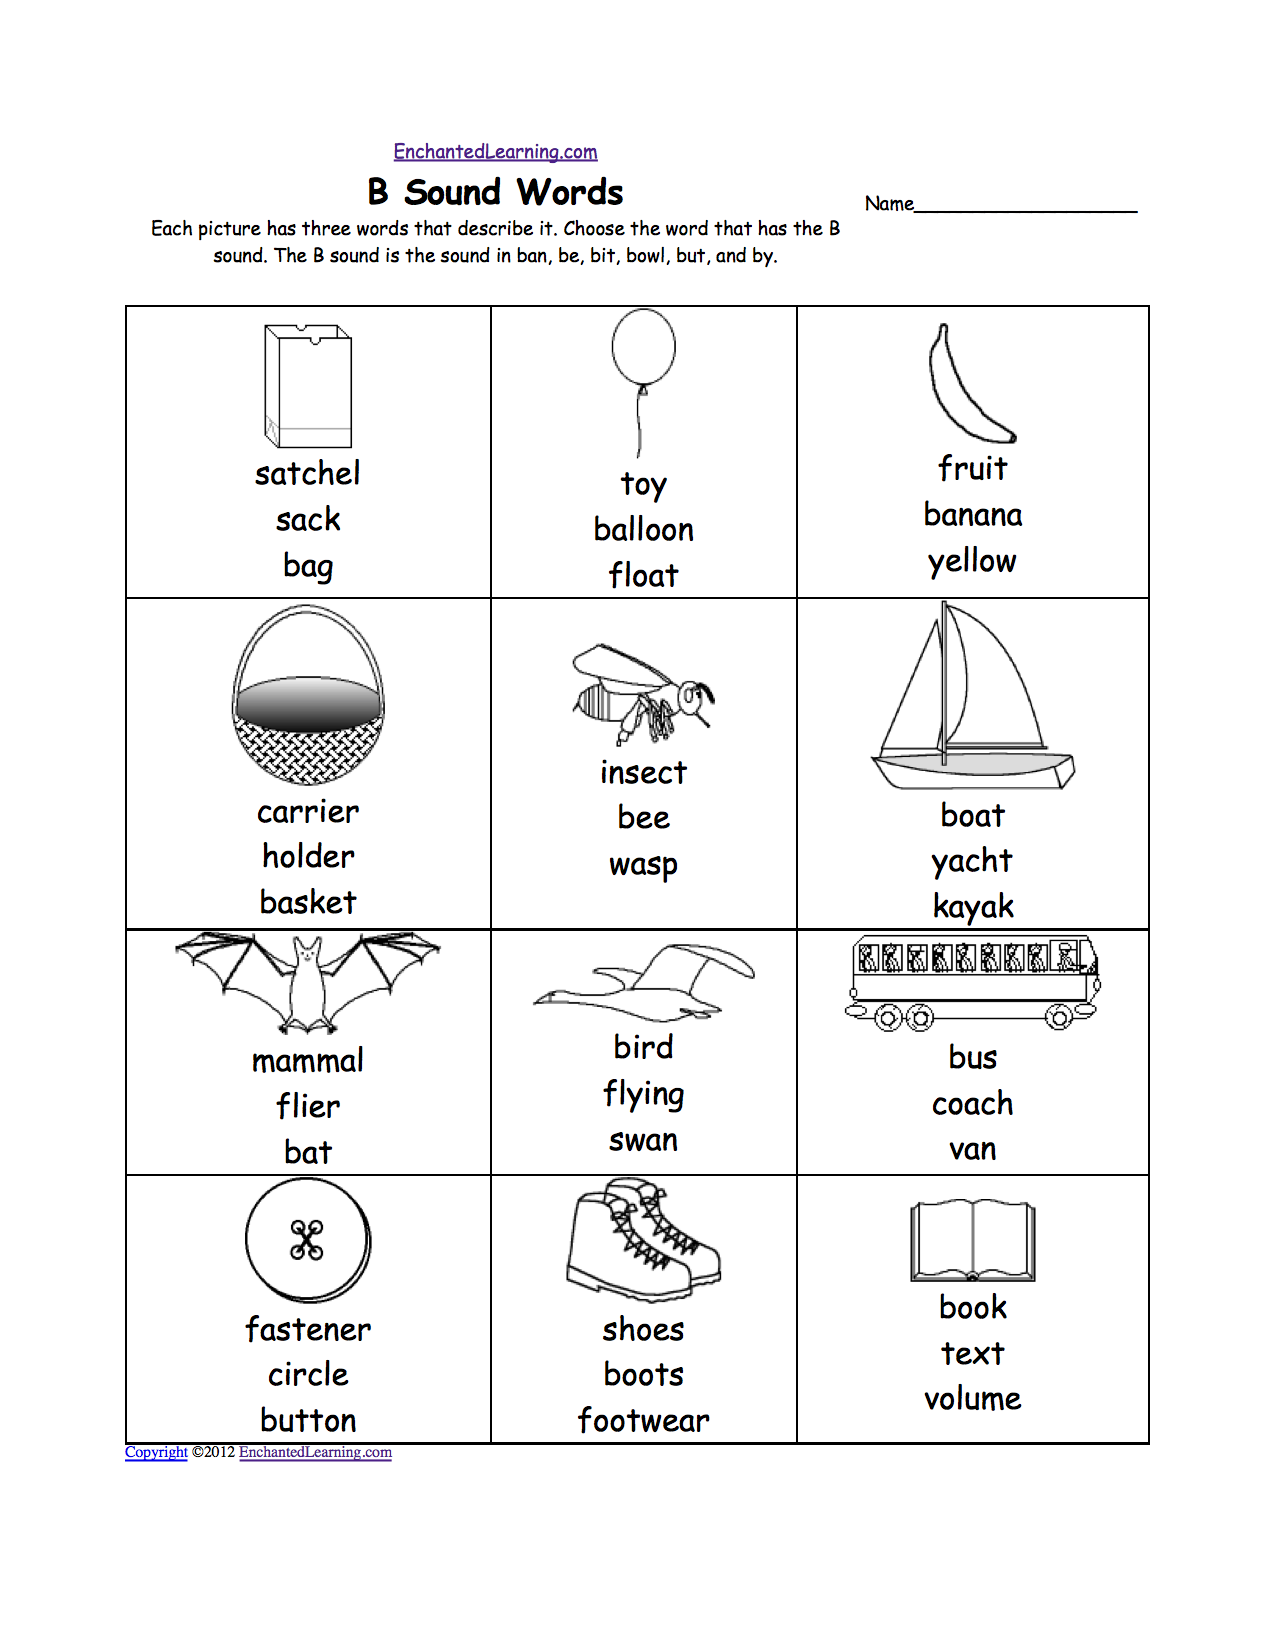 Weirdmailus  Pleasant Phonics Worksheets Multiple Choice Worksheets To Print  With Exquisite Quotbquot Sound Phonics Worksheet Multiple Choice Each Picture Has Three Words That Describe It Choose The Word That Has A Quotbquot Sound The Quotbquot Sound Is The Sound  With Charming Year  Chemistry Worksheets Also Child Support Expense Worksheet In Addition Adkar Worksheet And Worksheet On Conduction Convection And Radiation As Well As Printable Calendar Worksheets Additionally Pronoun Worksheets For Grade  From Enchantedlearningcom With Weirdmailus  Exquisite Phonics Worksheets Multiple Choice Worksheets To Print  With Charming Quotbquot Sound Phonics Worksheet Multiple Choice Each Picture Has Three Words That Describe It Choose The Word That Has A Quotbquot Sound The Quotbquot Sound Is The Sound  And Pleasant Year  Chemistry Worksheets Also Child Support Expense Worksheet In Addition Adkar Worksheet From Enchantedlearningcom